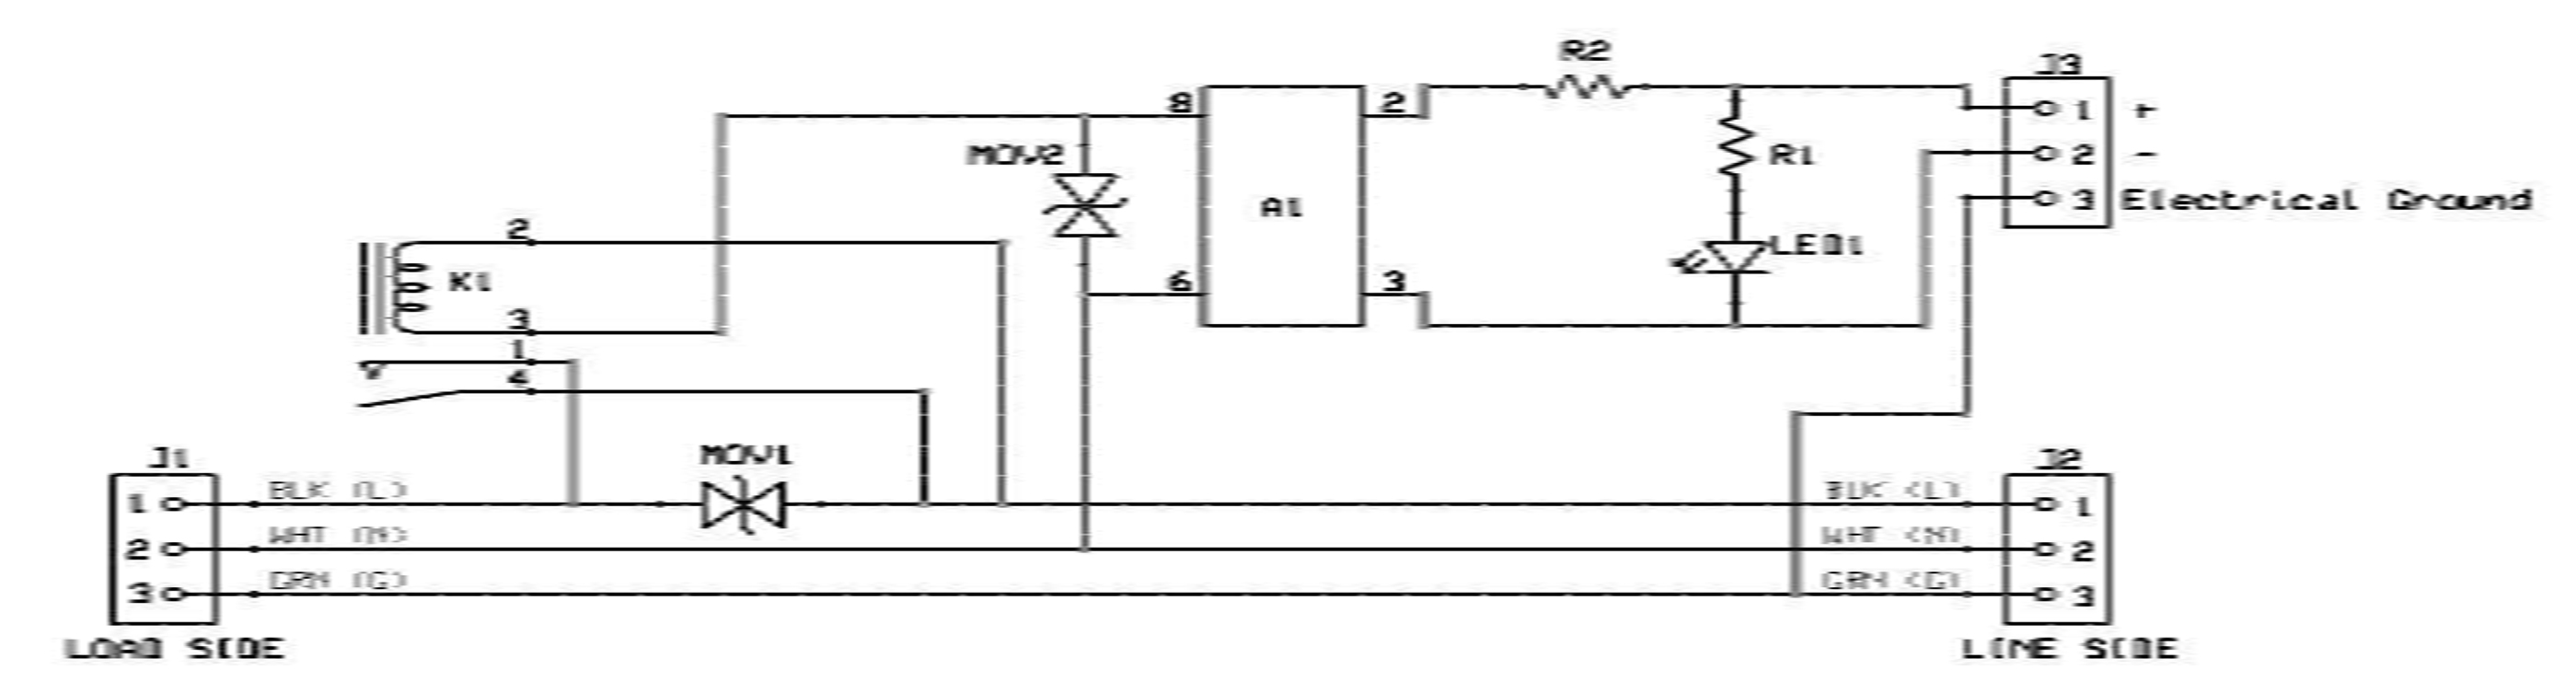 Power Switch Tail II Schematic